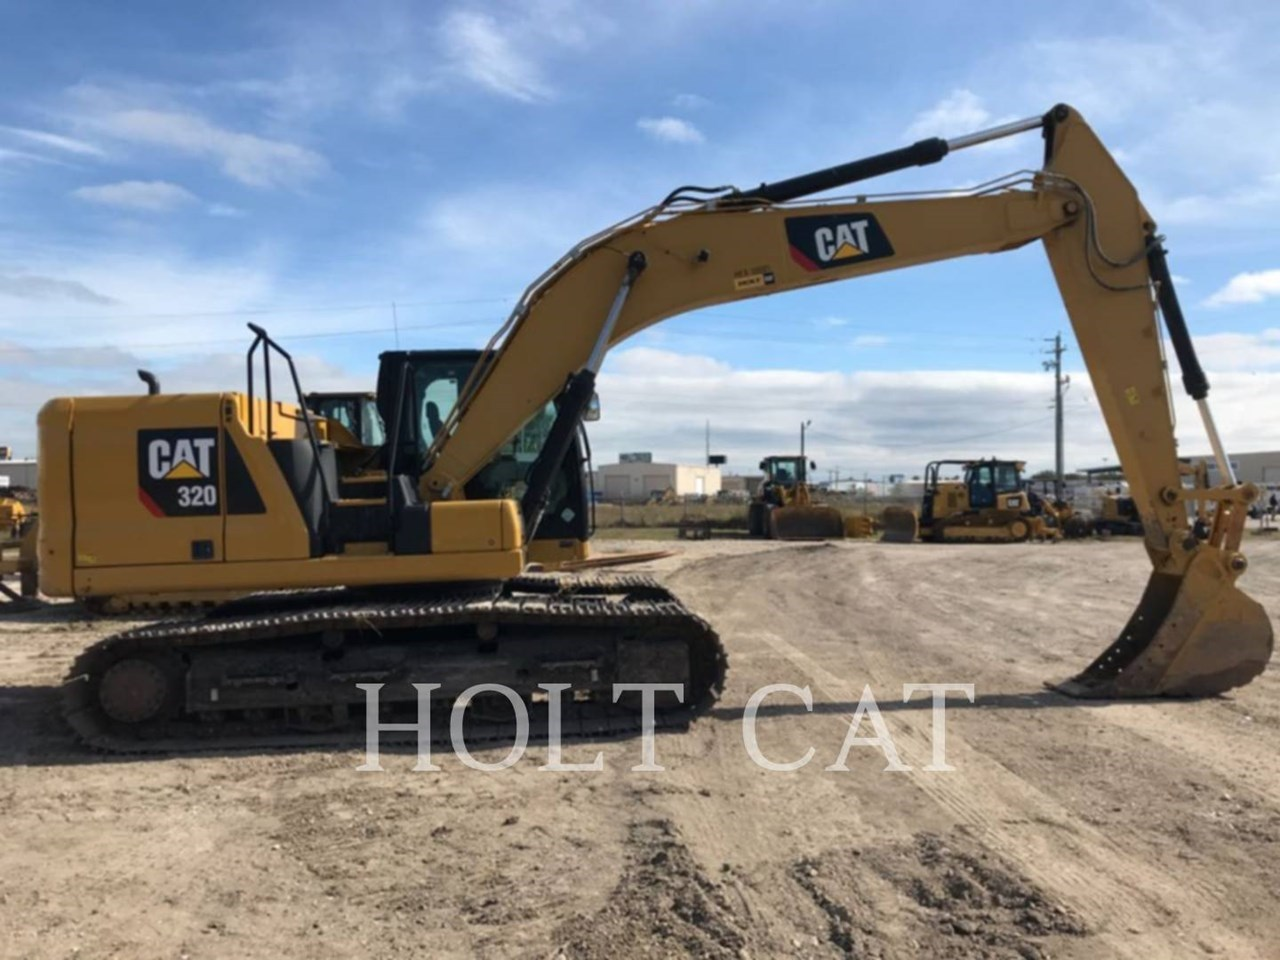 2019 Caterpillar 320 Image 3